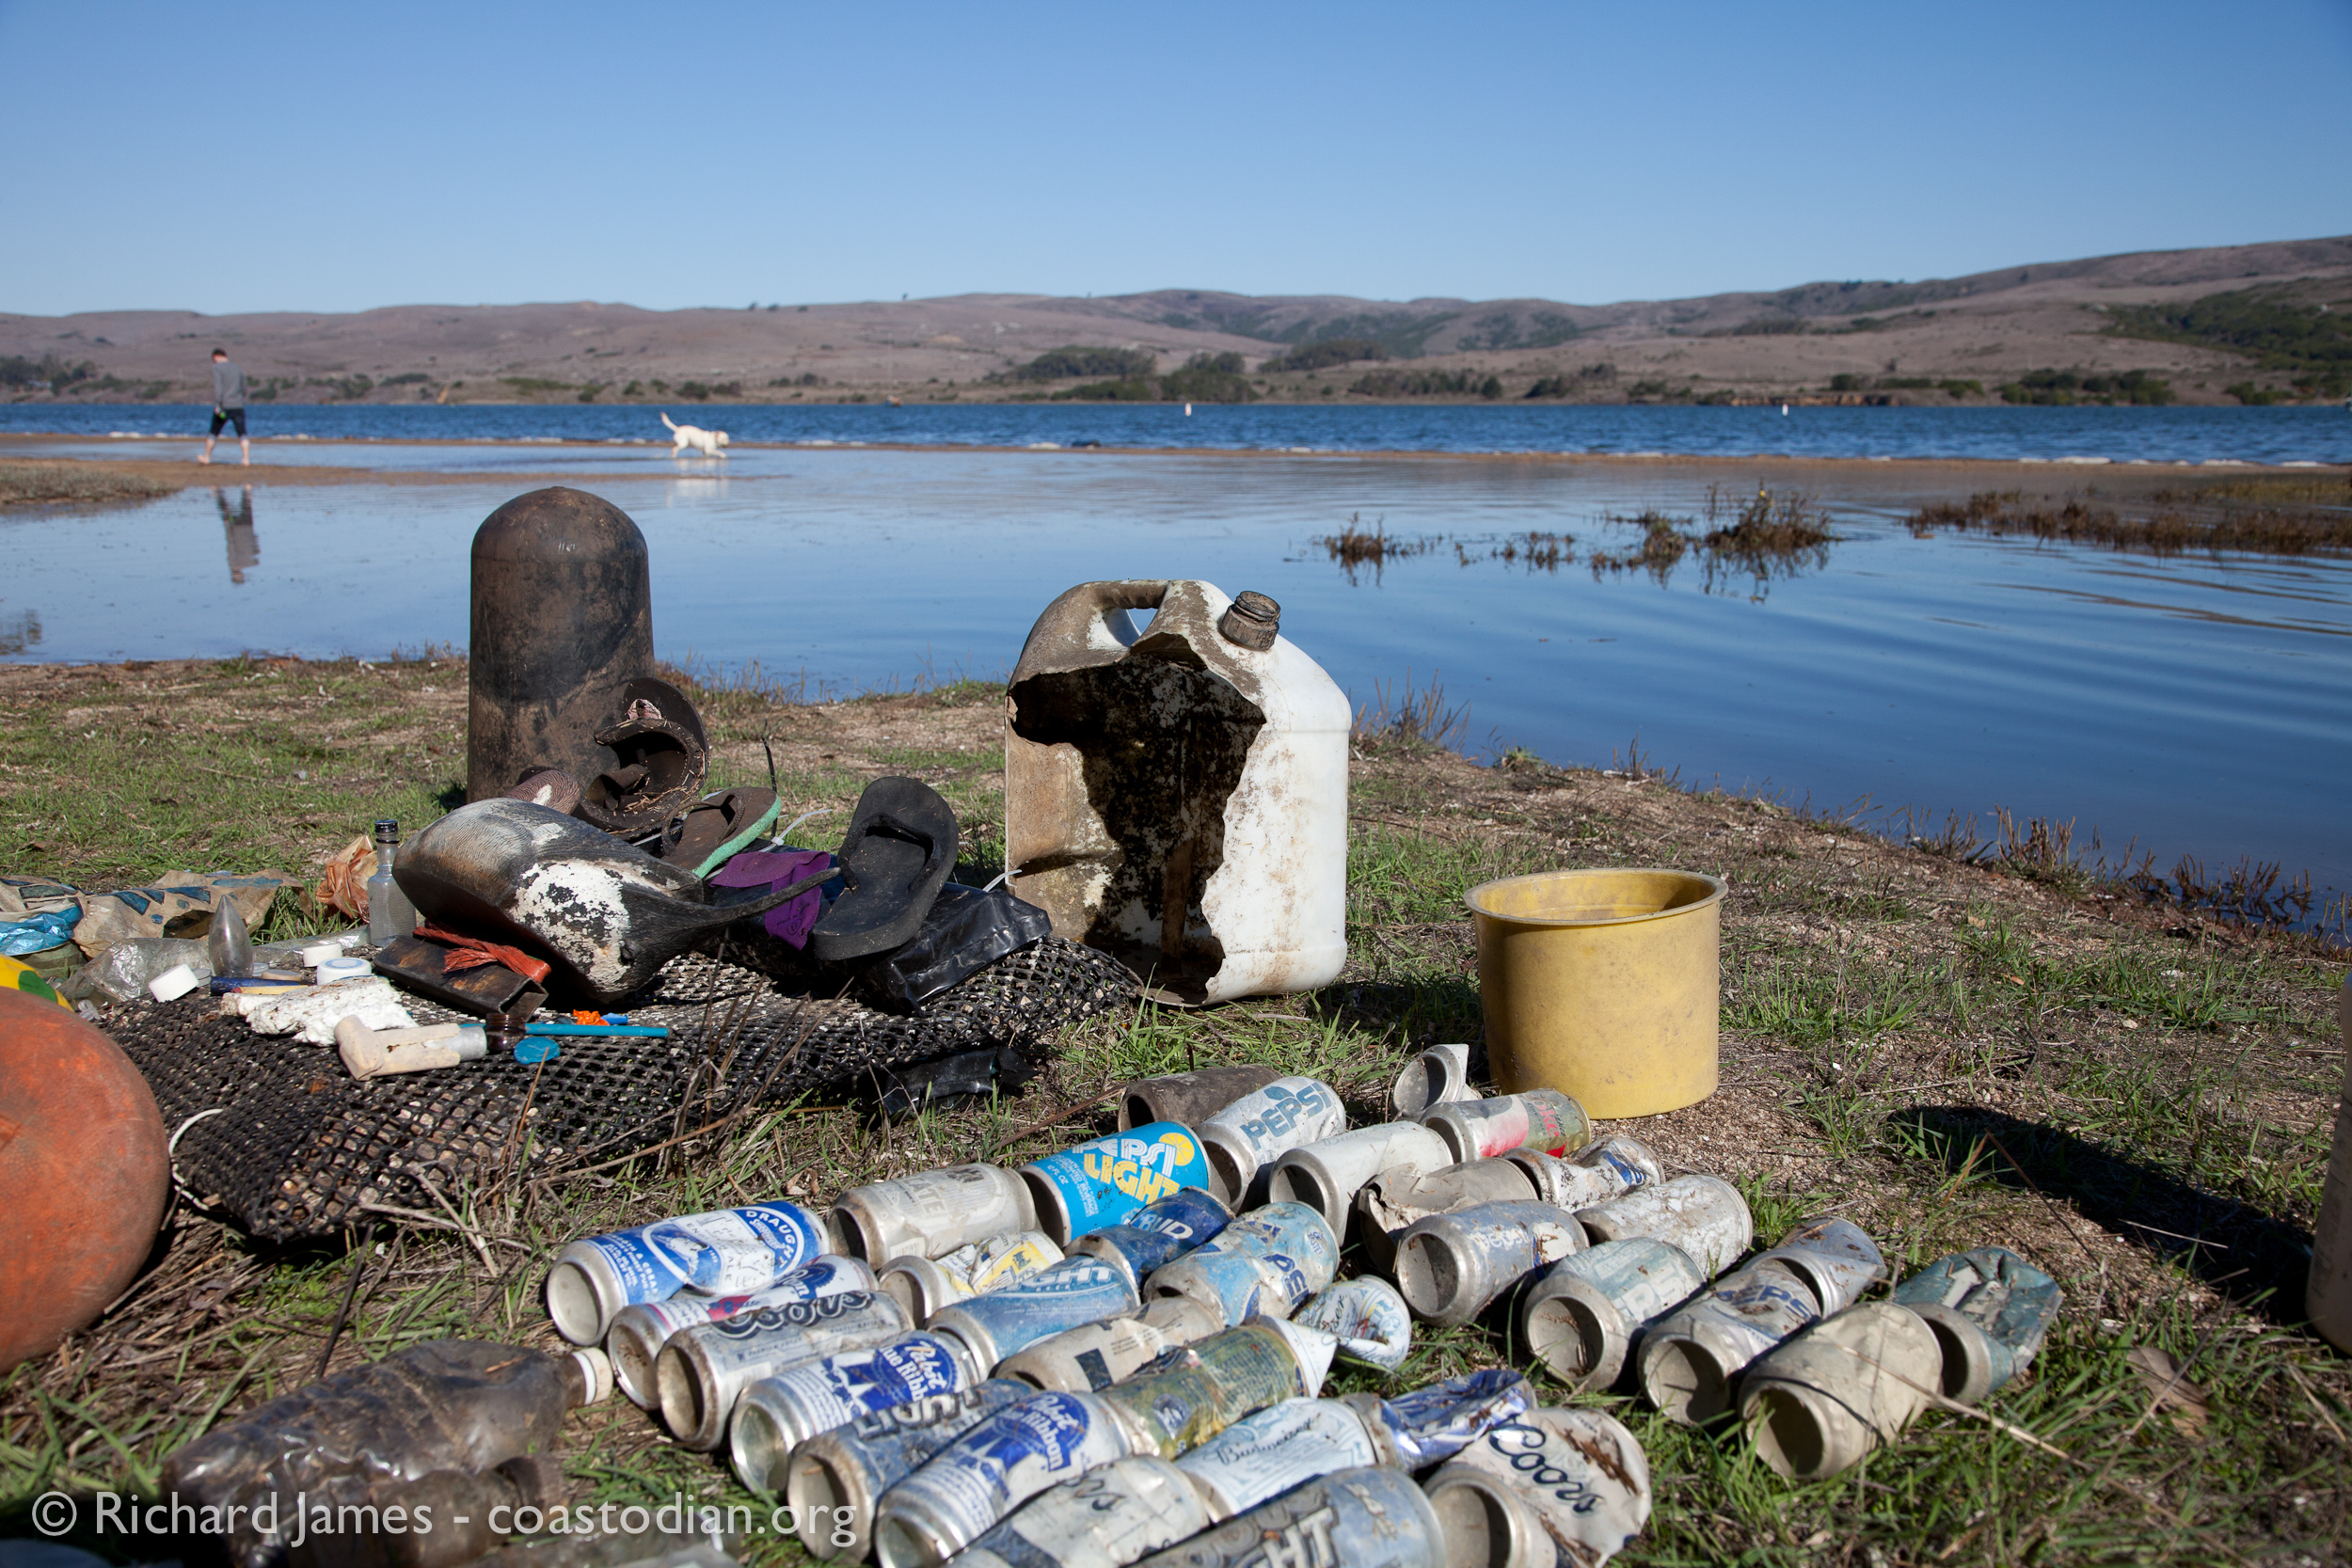 Debris removed from Southern Tomales Bay on 25 Nov. ©Richard James - coastodian.org